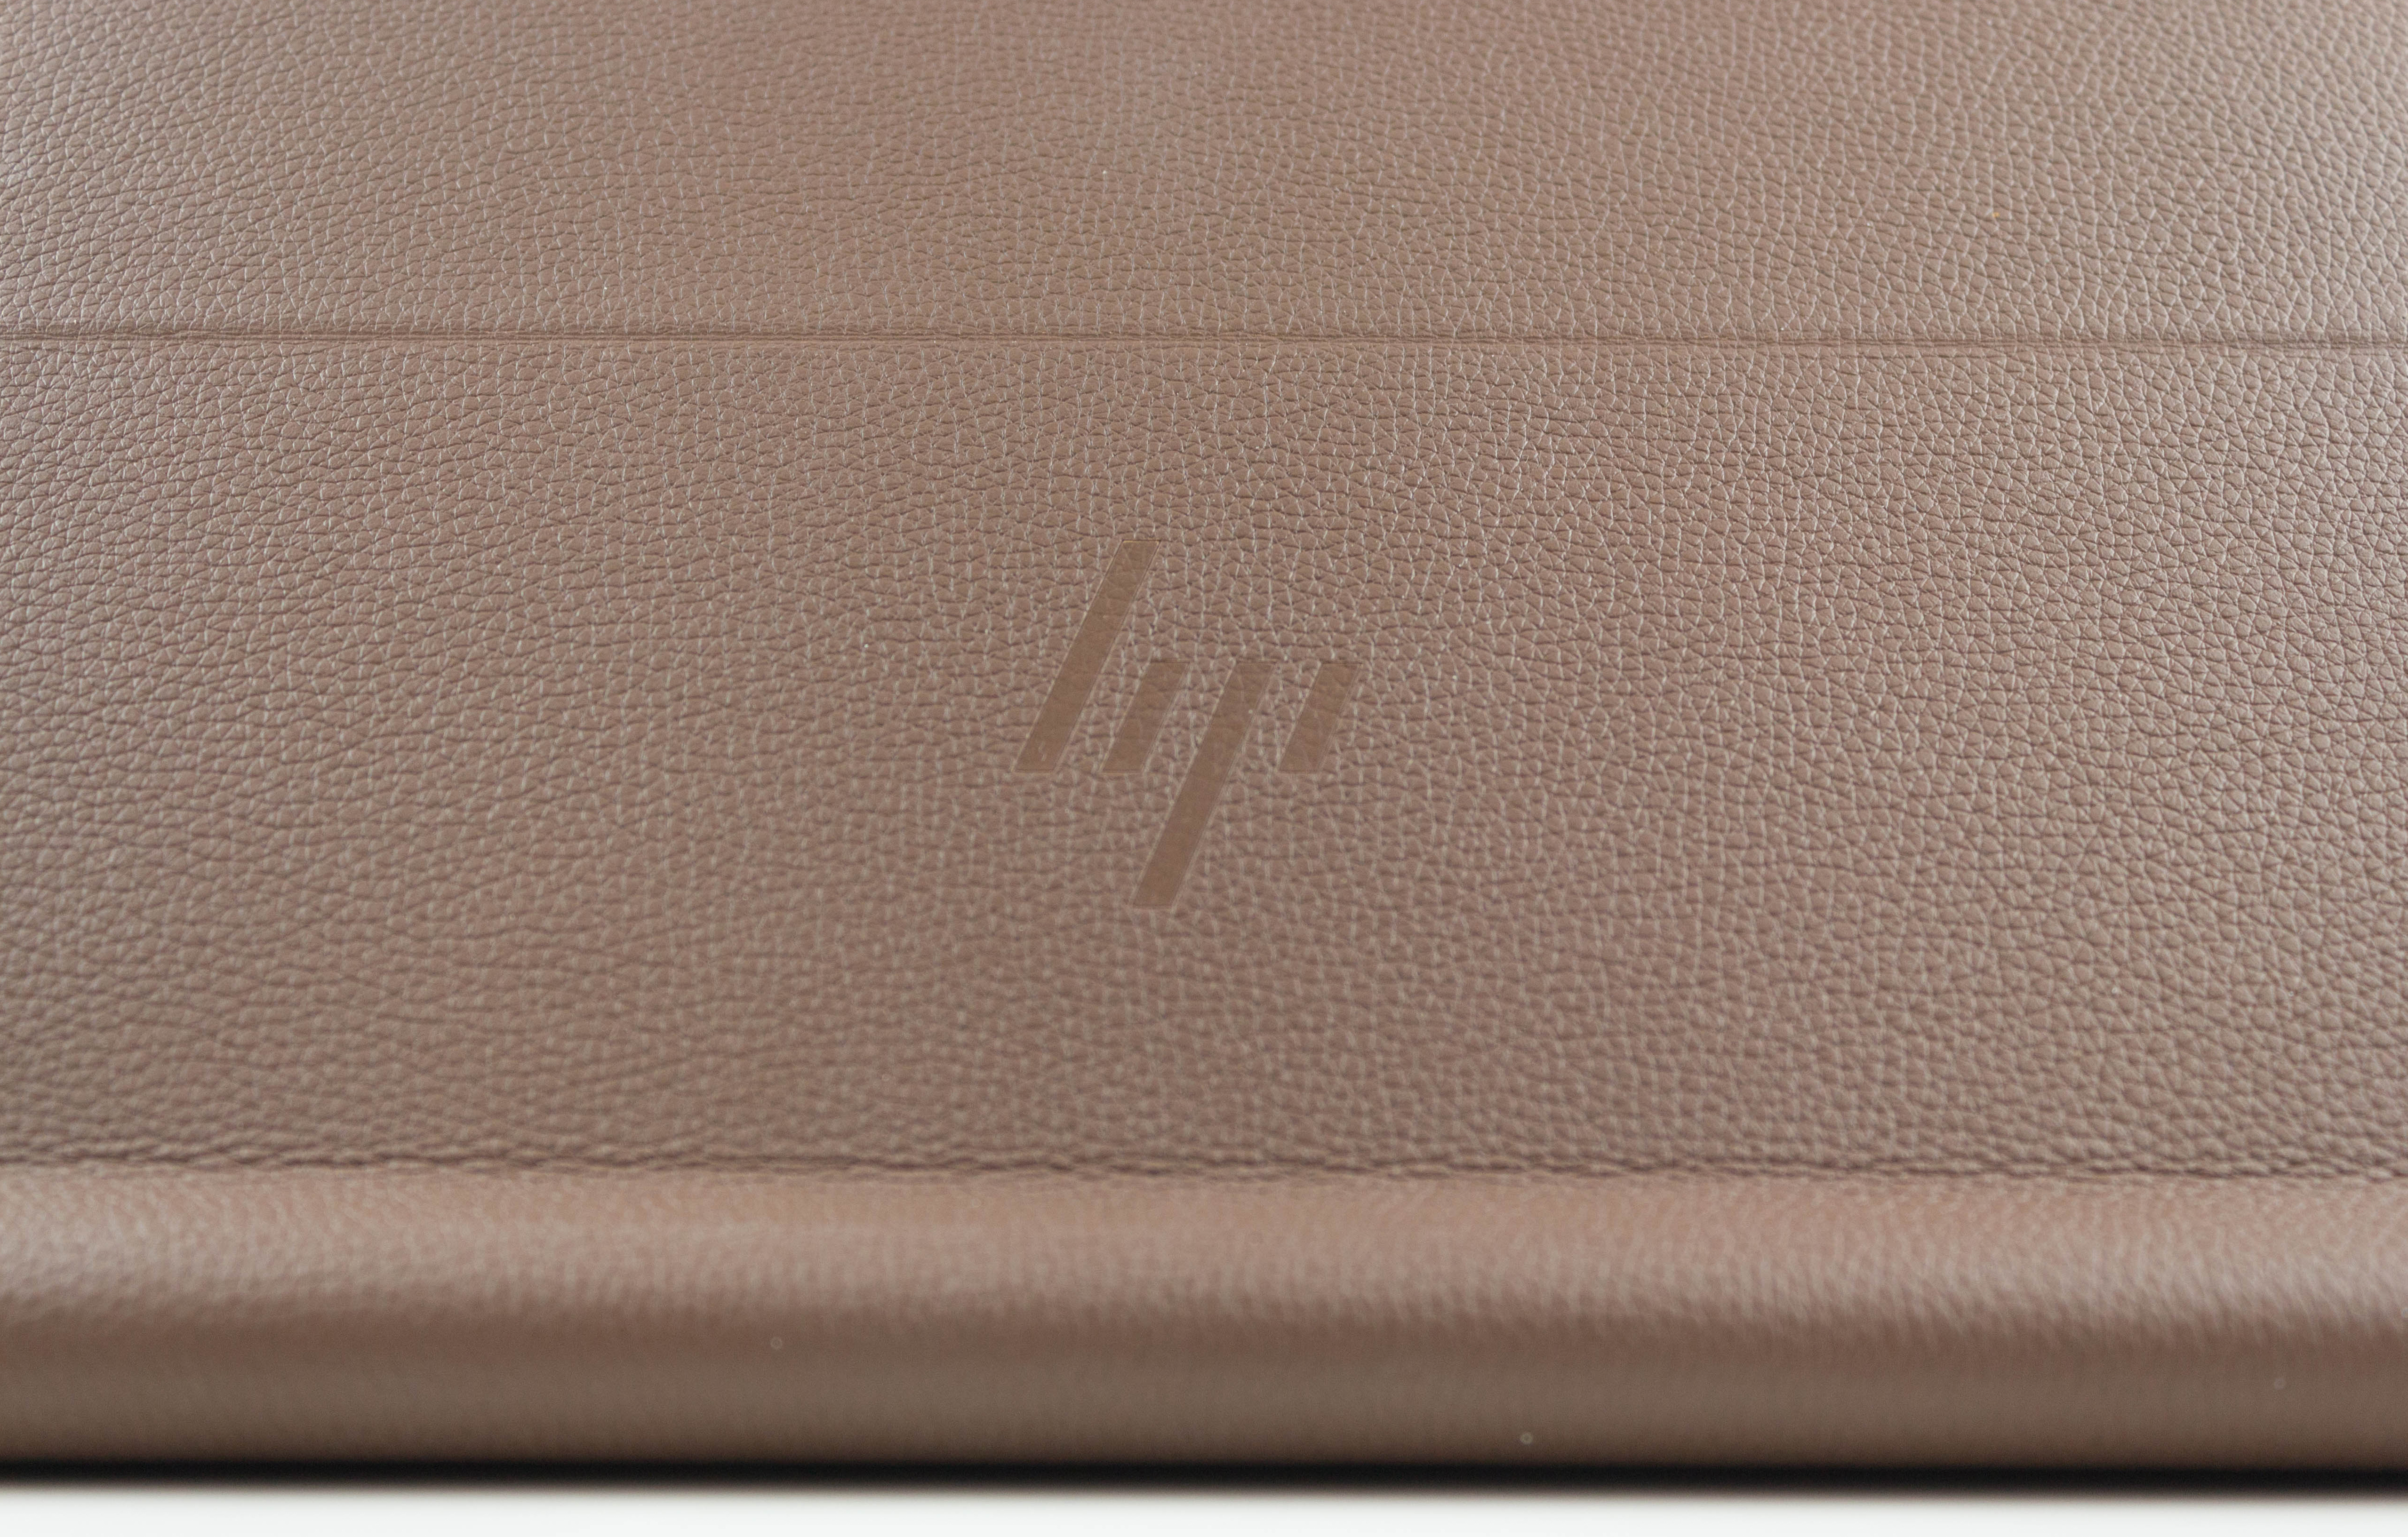 The HP Spectre Folio Review: Luxurious Leather Laptop